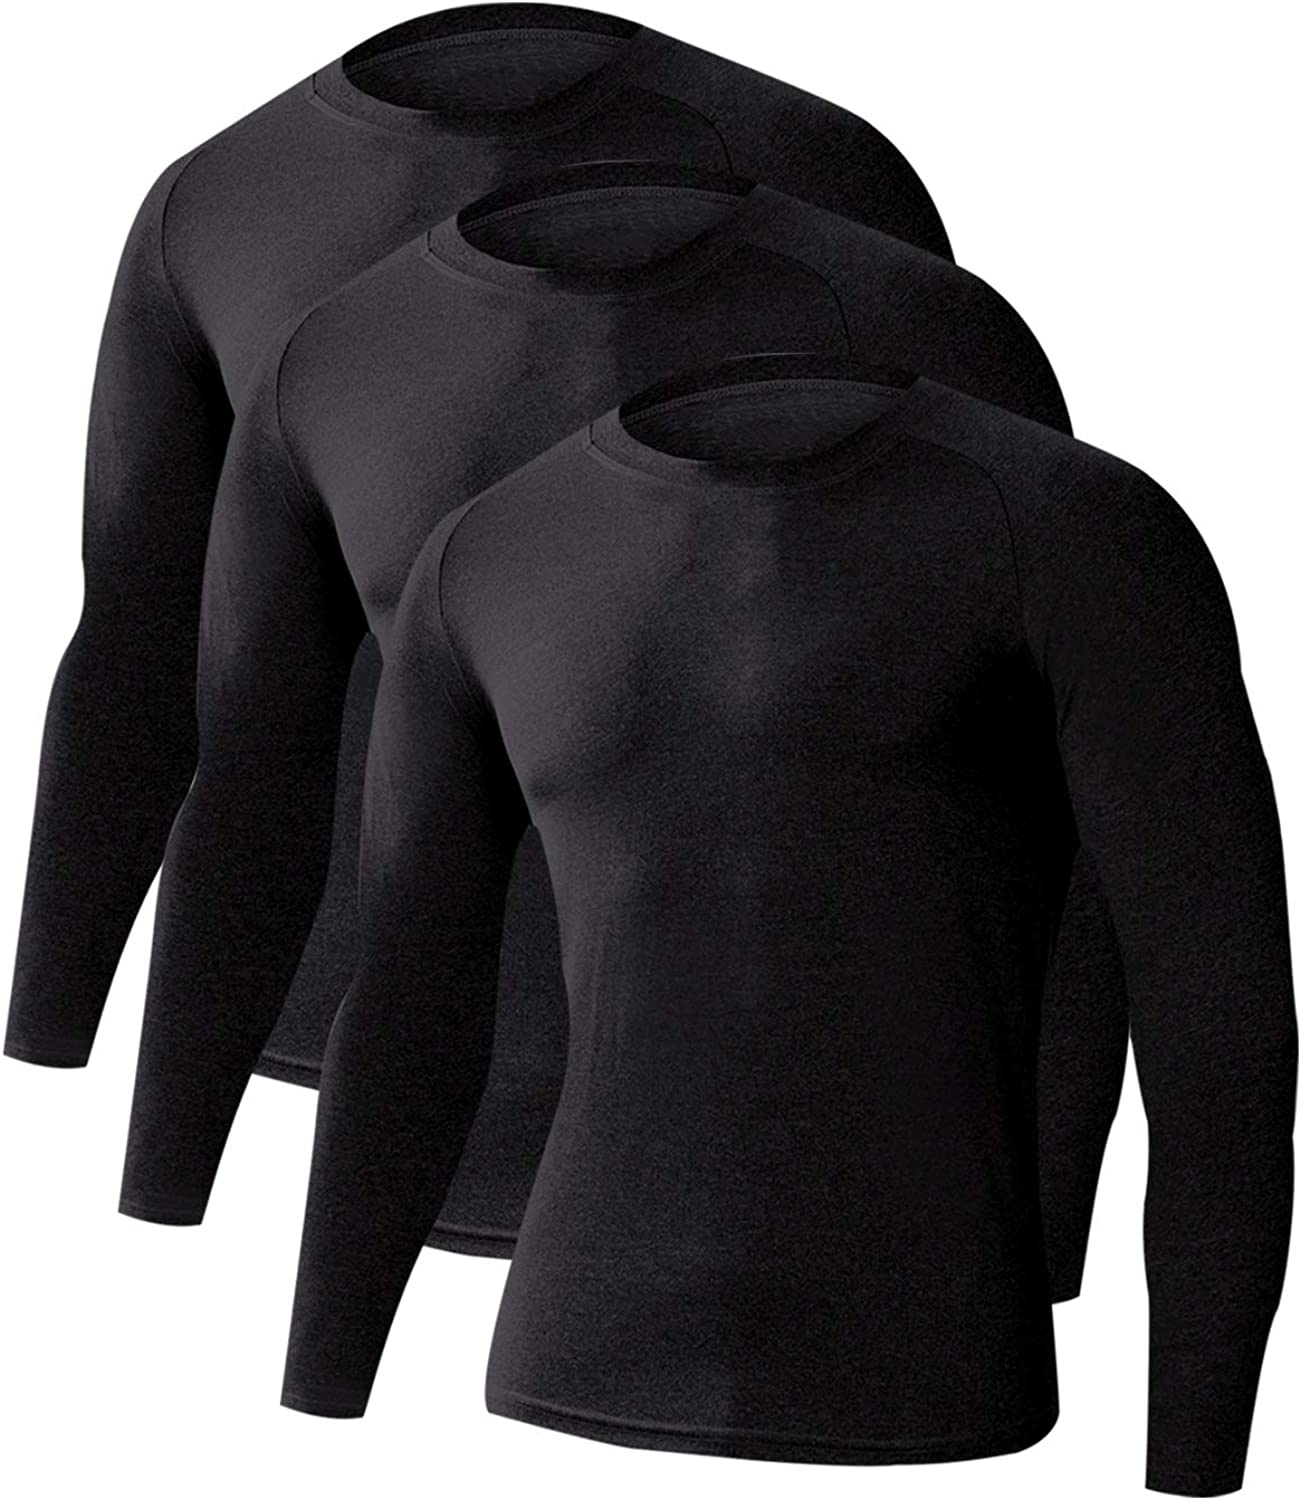 LNJLVI Men's 3 Pack Athletic Long Shirts Compression Base Very popular Layer Industry No. 1